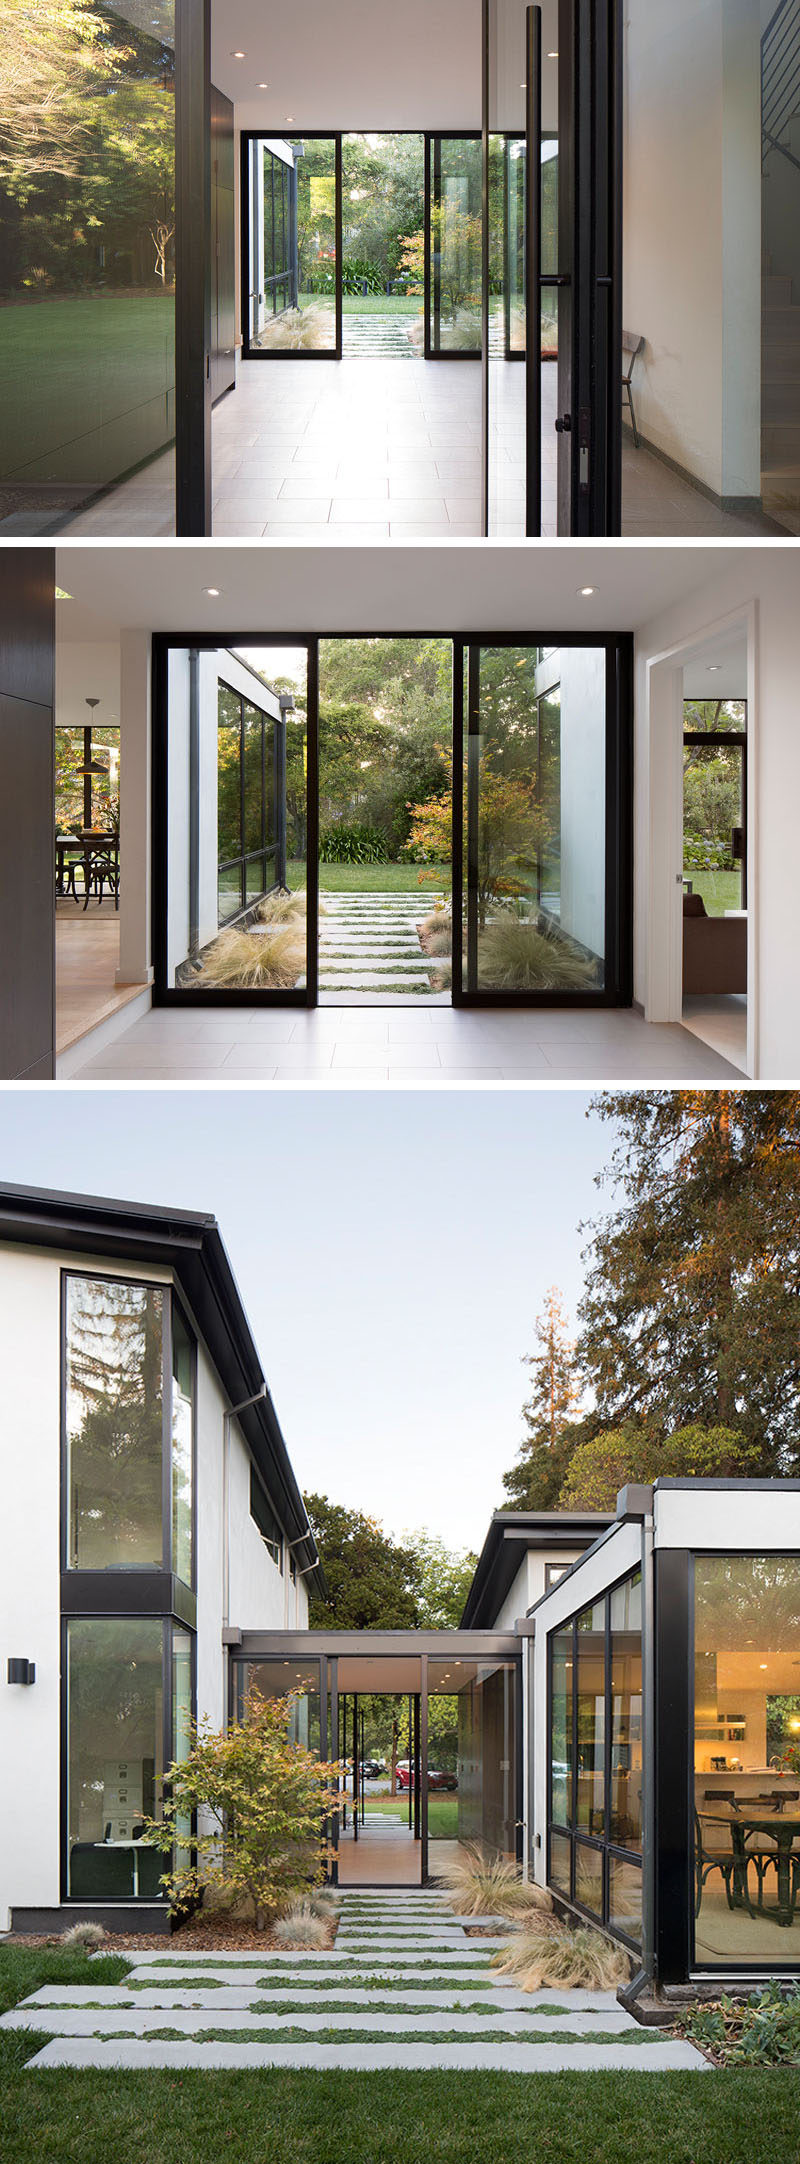 Inside this modern house, there's a glass entry vestibule separates the public and private spaces within the house, and draws the family and visitors into the home and through to the backyard. #Entryway #GlassDoors #ModernHouse